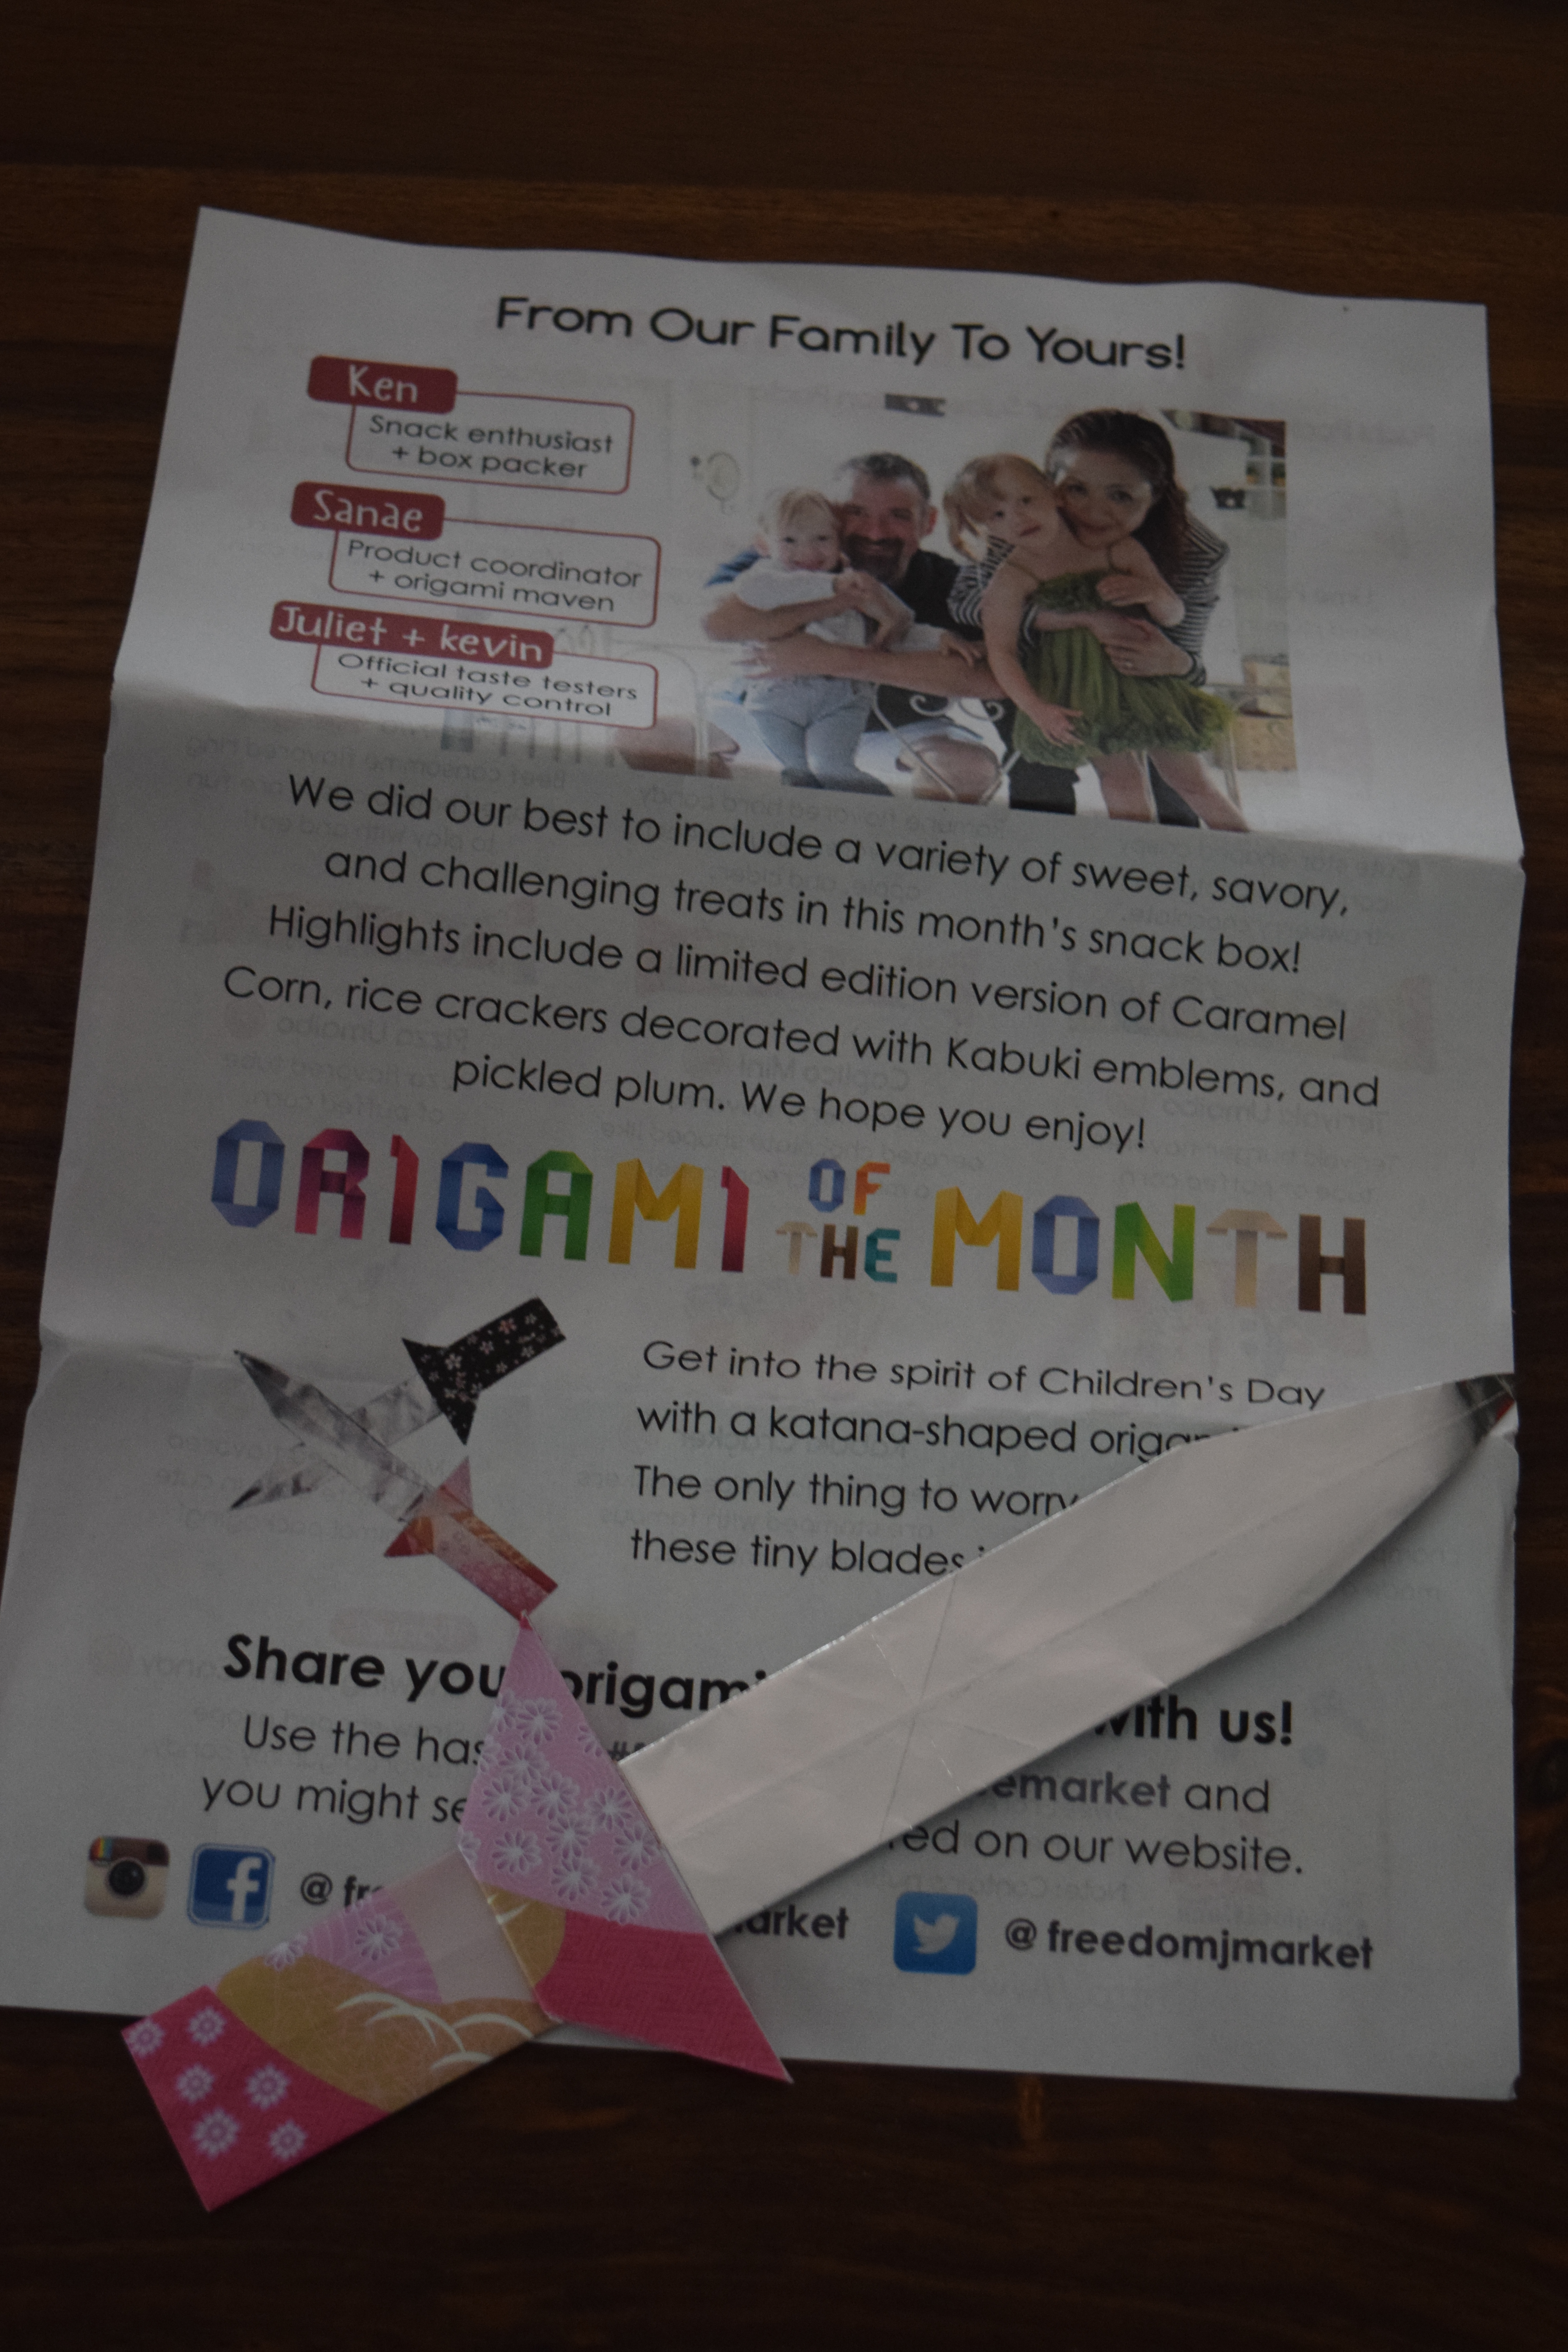 Freedom Japanese Market April 2017 Special Offer Subscription Origami Sword Now To The Snacks